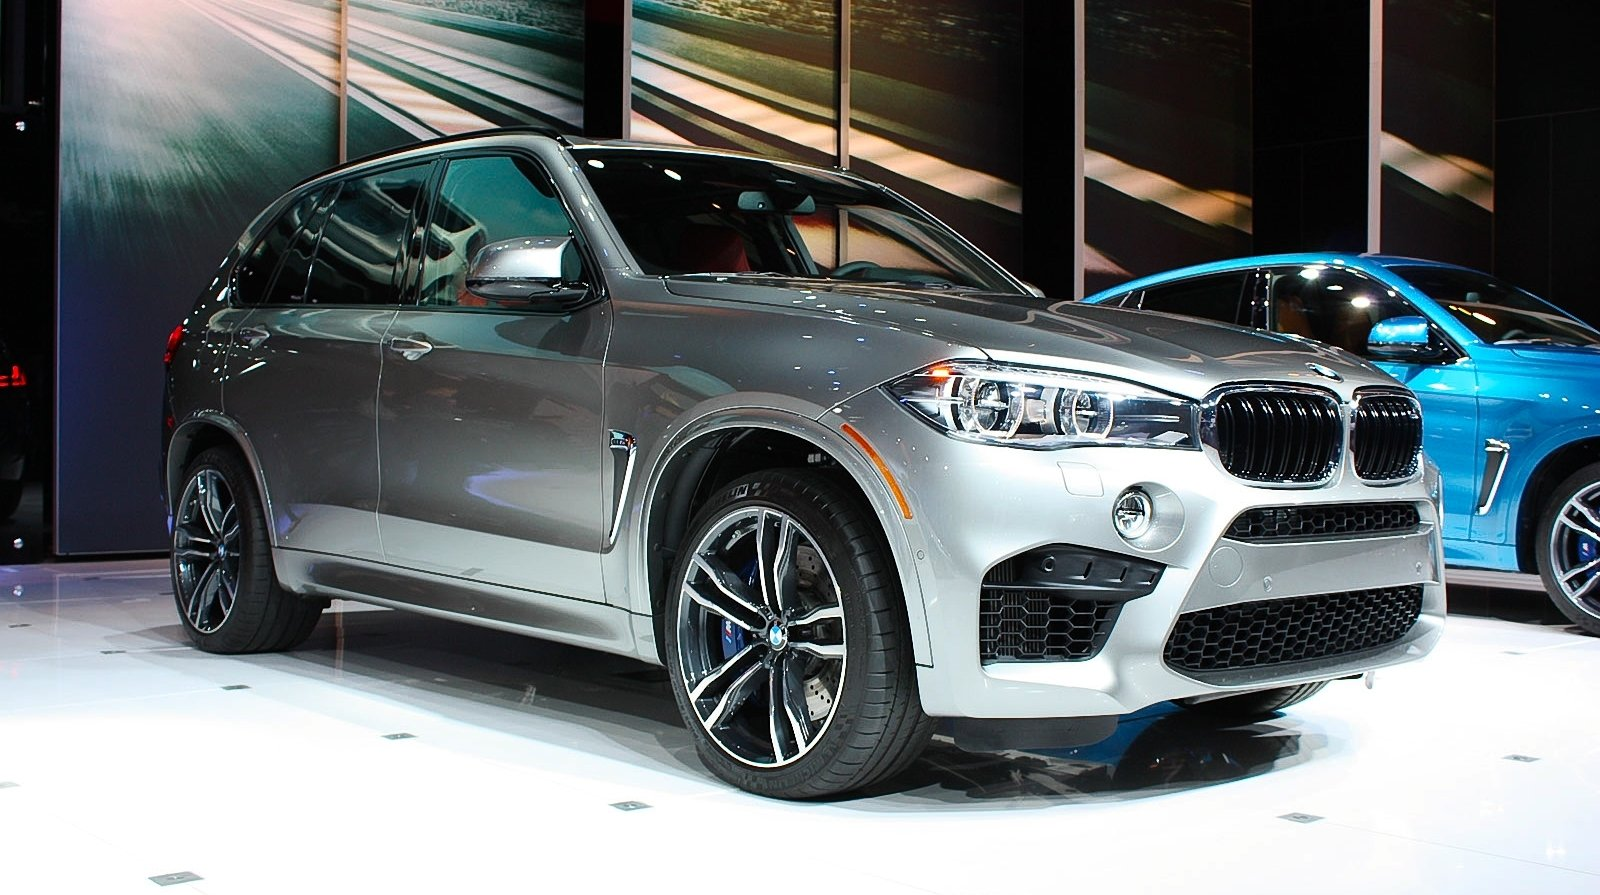 2015 bmw x5 m review - top speed